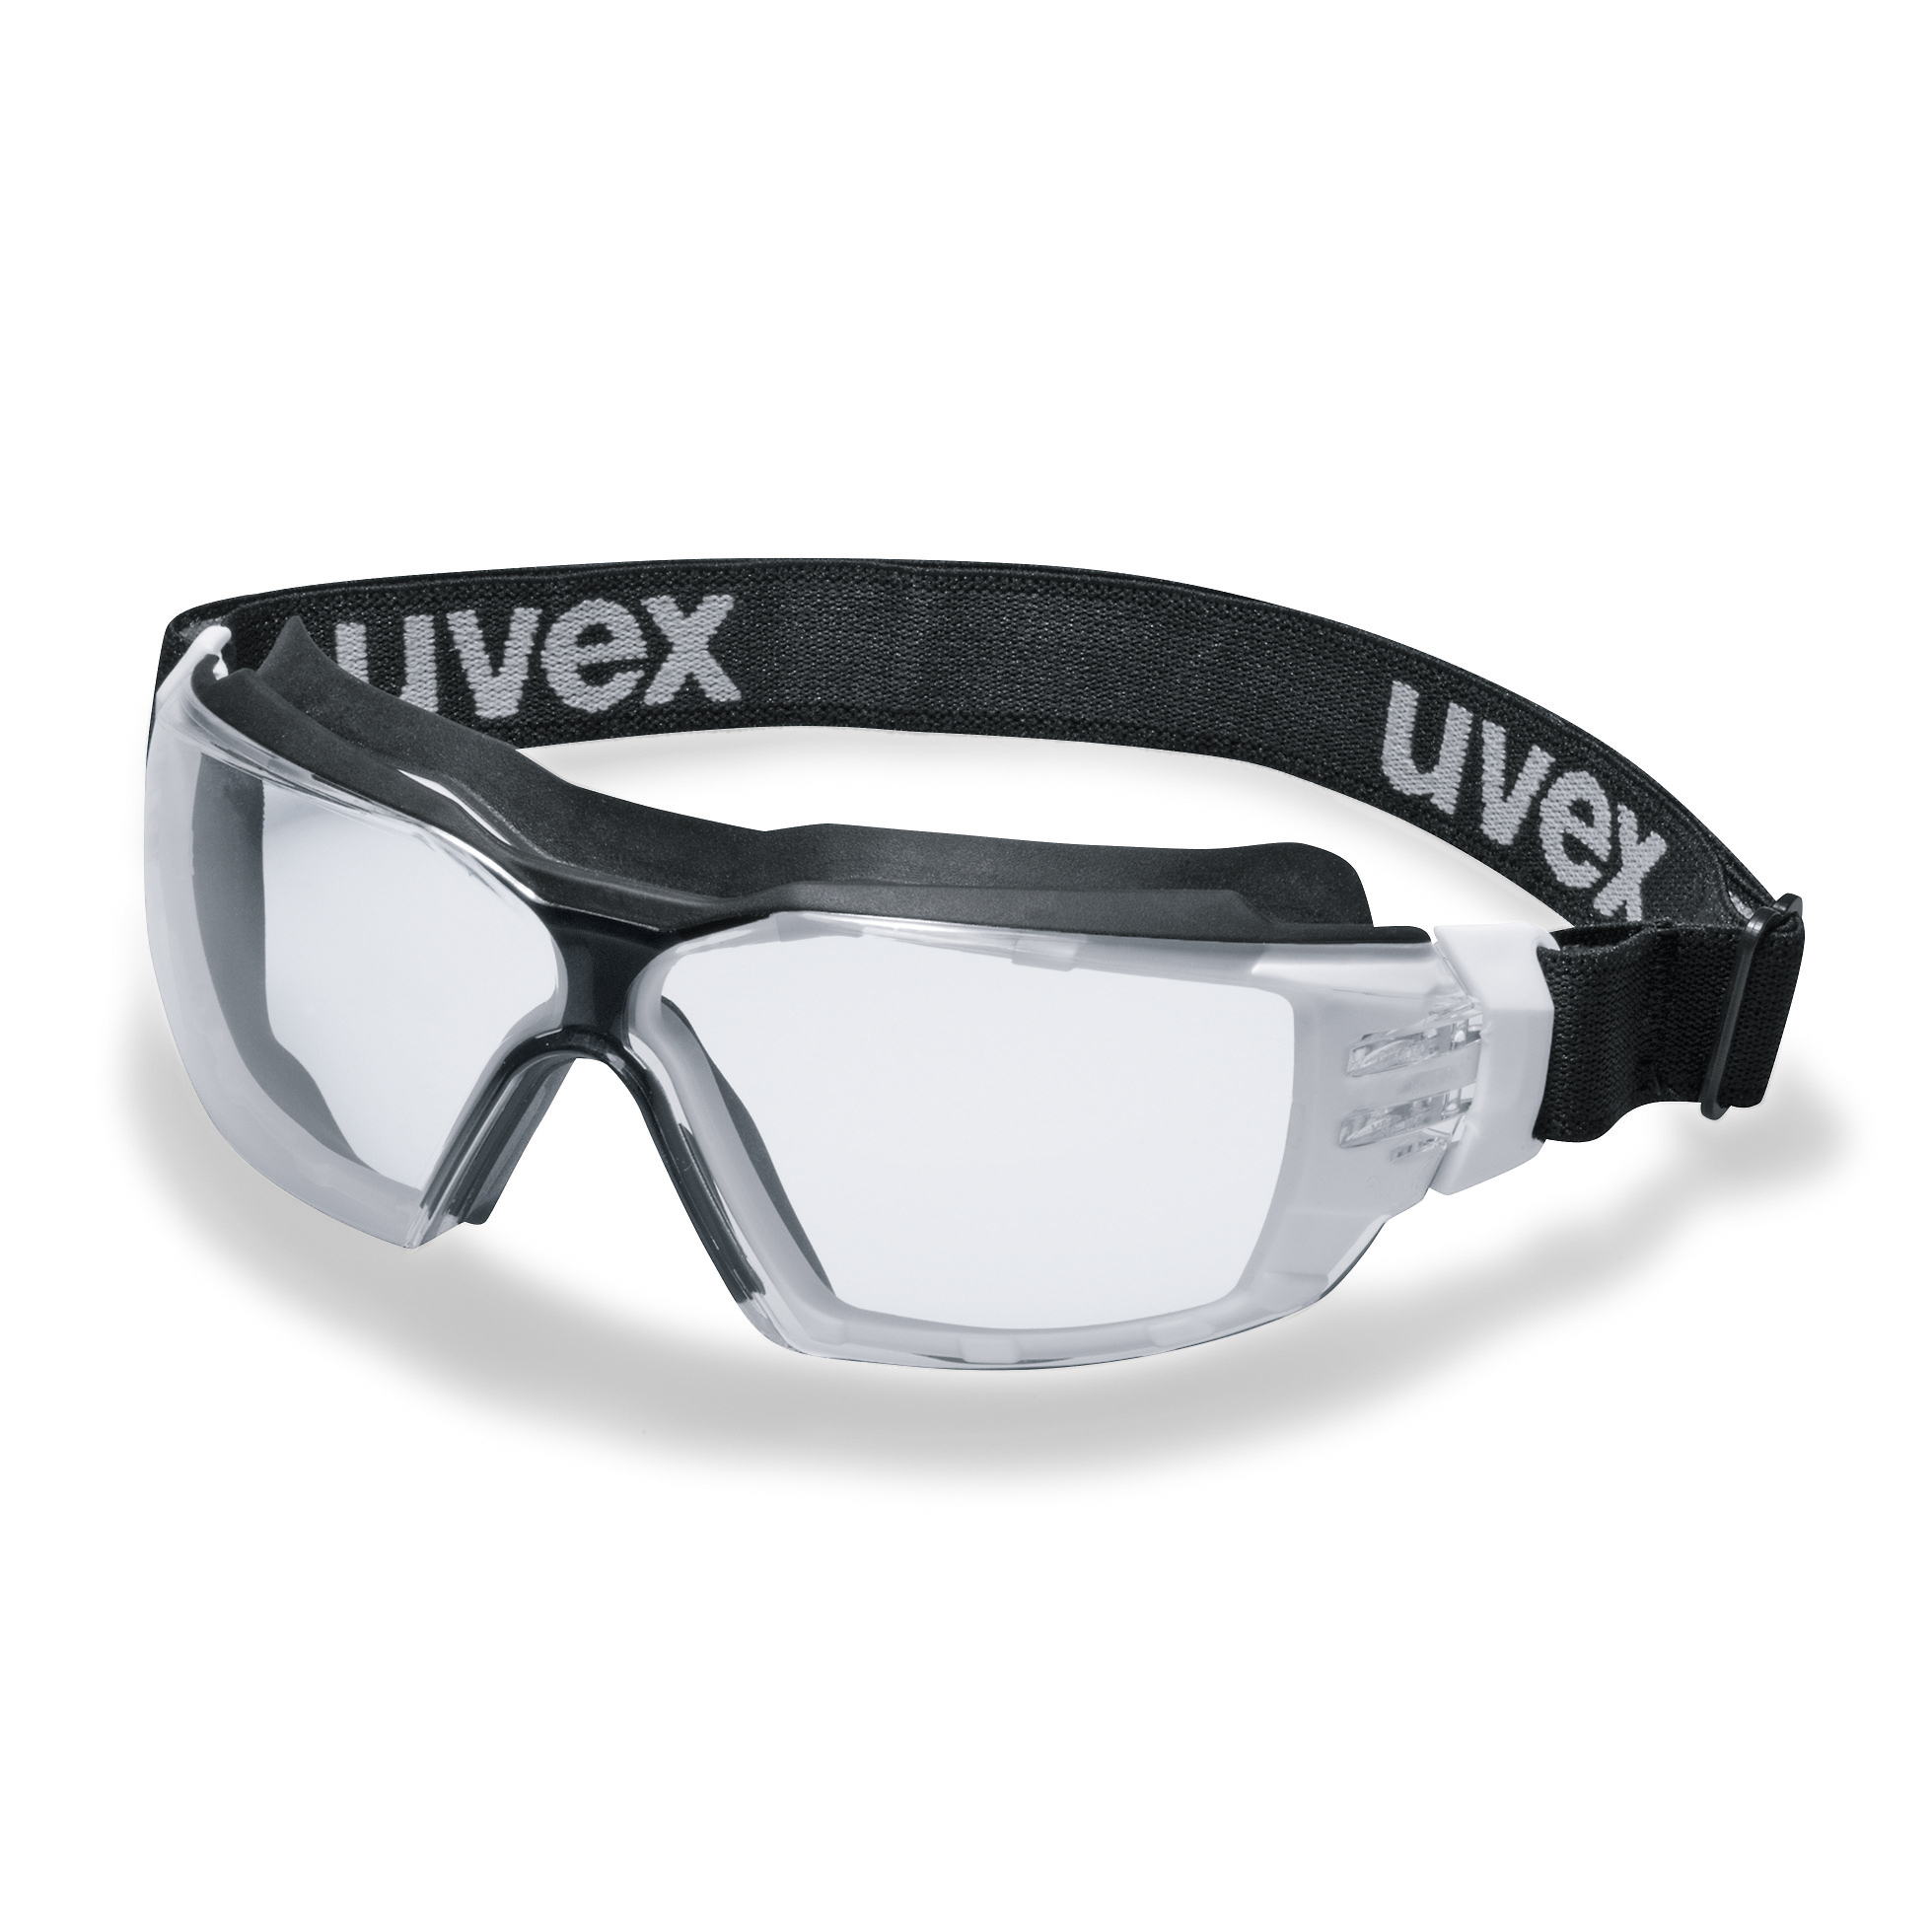 05203d1a6bcd uvex pheos cx2 sonic goggles